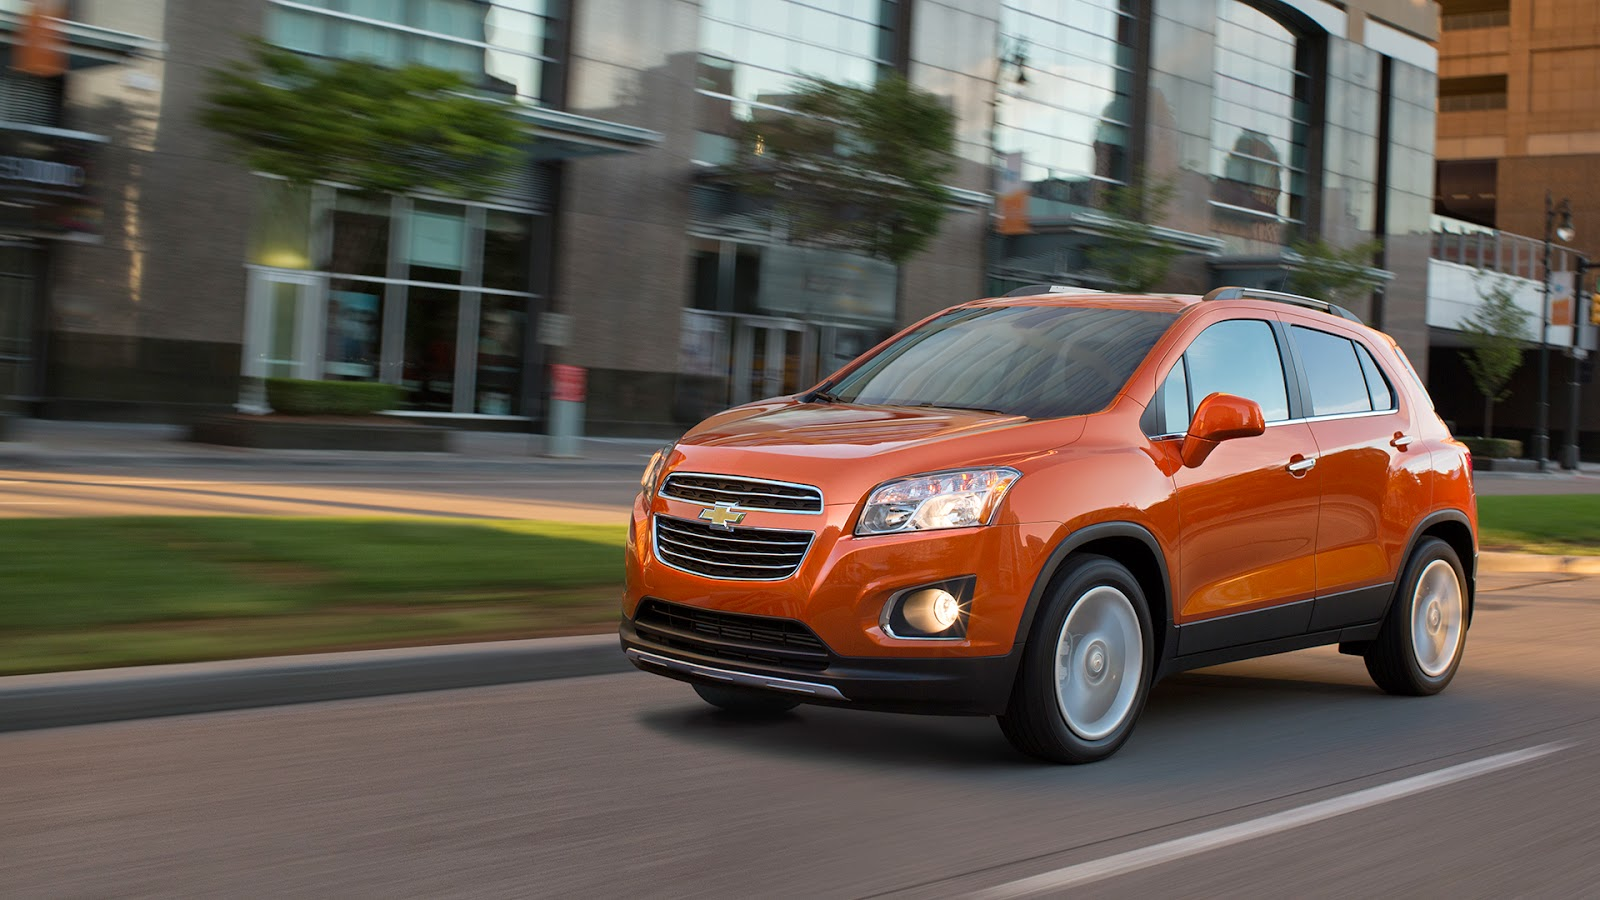 2015 Buick Encore and 2015 Chevrolet Trax Earn IIHS Top Safety Picks Awards